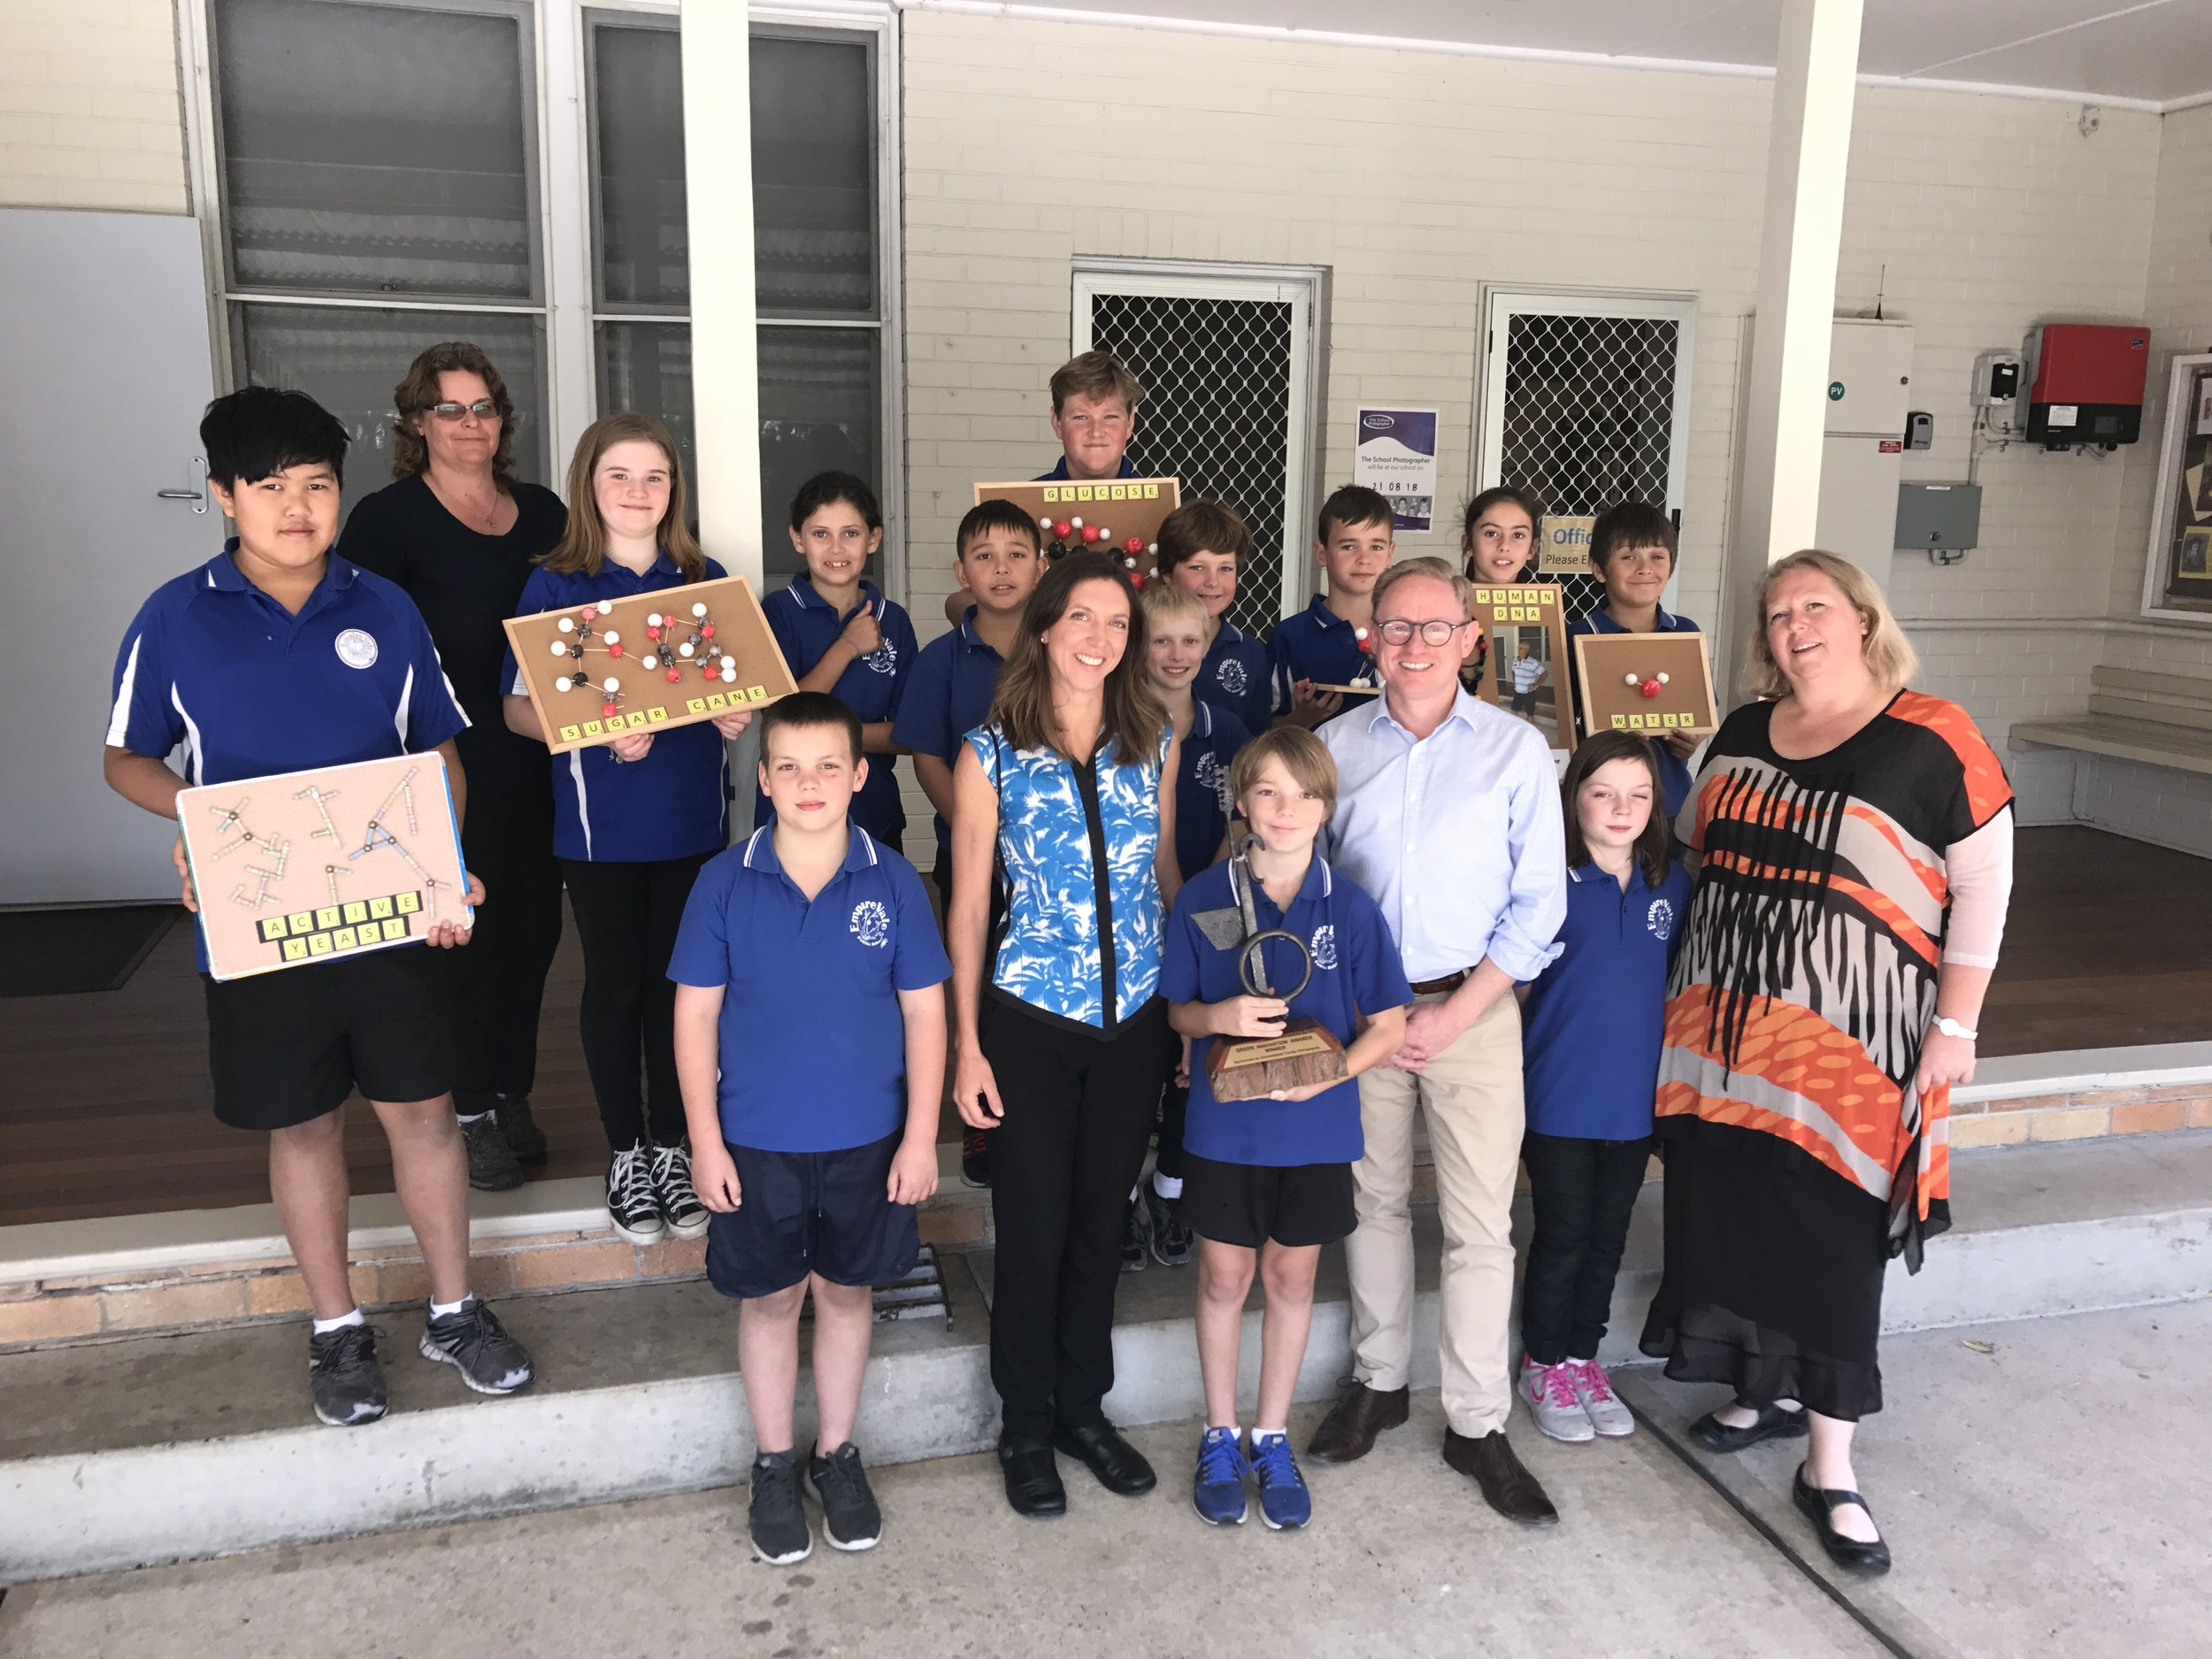 Founder of the Green Innovation Awards Dr Bridie Cullinane, Ben Franklin MP, and teacher Karen Rantissi with students from Empire Vale Primary School holding their 2018 Green Innovation Award earlier this year.